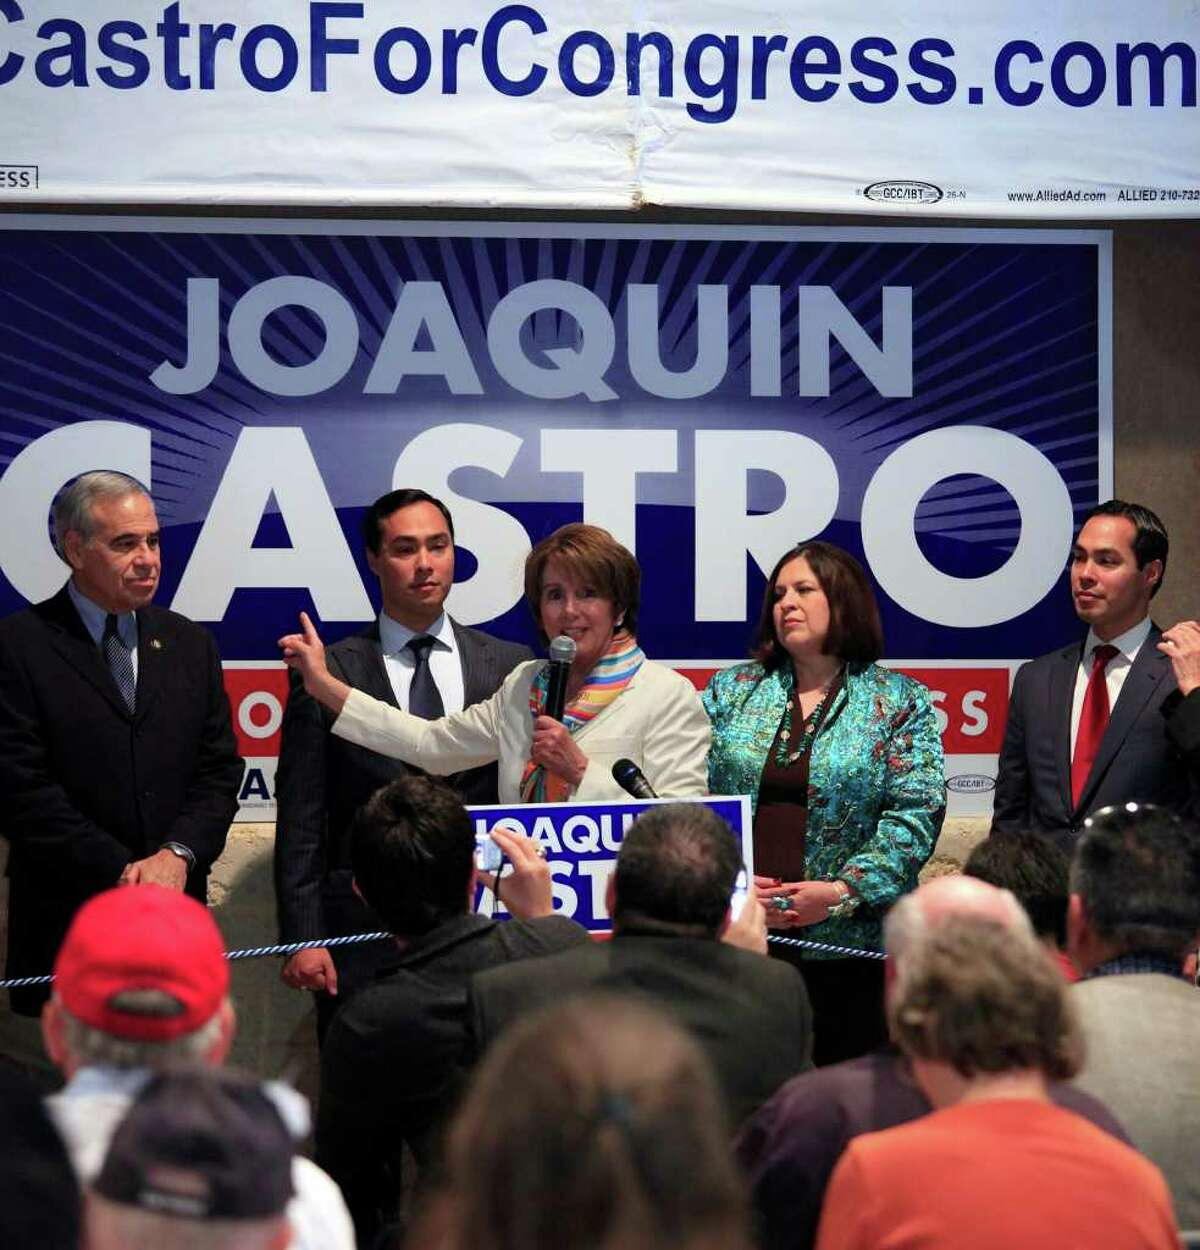 House Minority Leader Nancy Pelosi, center with microphone, jestures to Congressman Charlie Gonzalez, from the left, and is also joined by congressional candidate Joaquin Castro, state senator Leticia Van de Putte, Mayor Julian Castro at a breakfast rally for Joaquin at Avenida Guadalupe's El Progreso Hall, Saturday, February 18, 2012 in San Antonio.